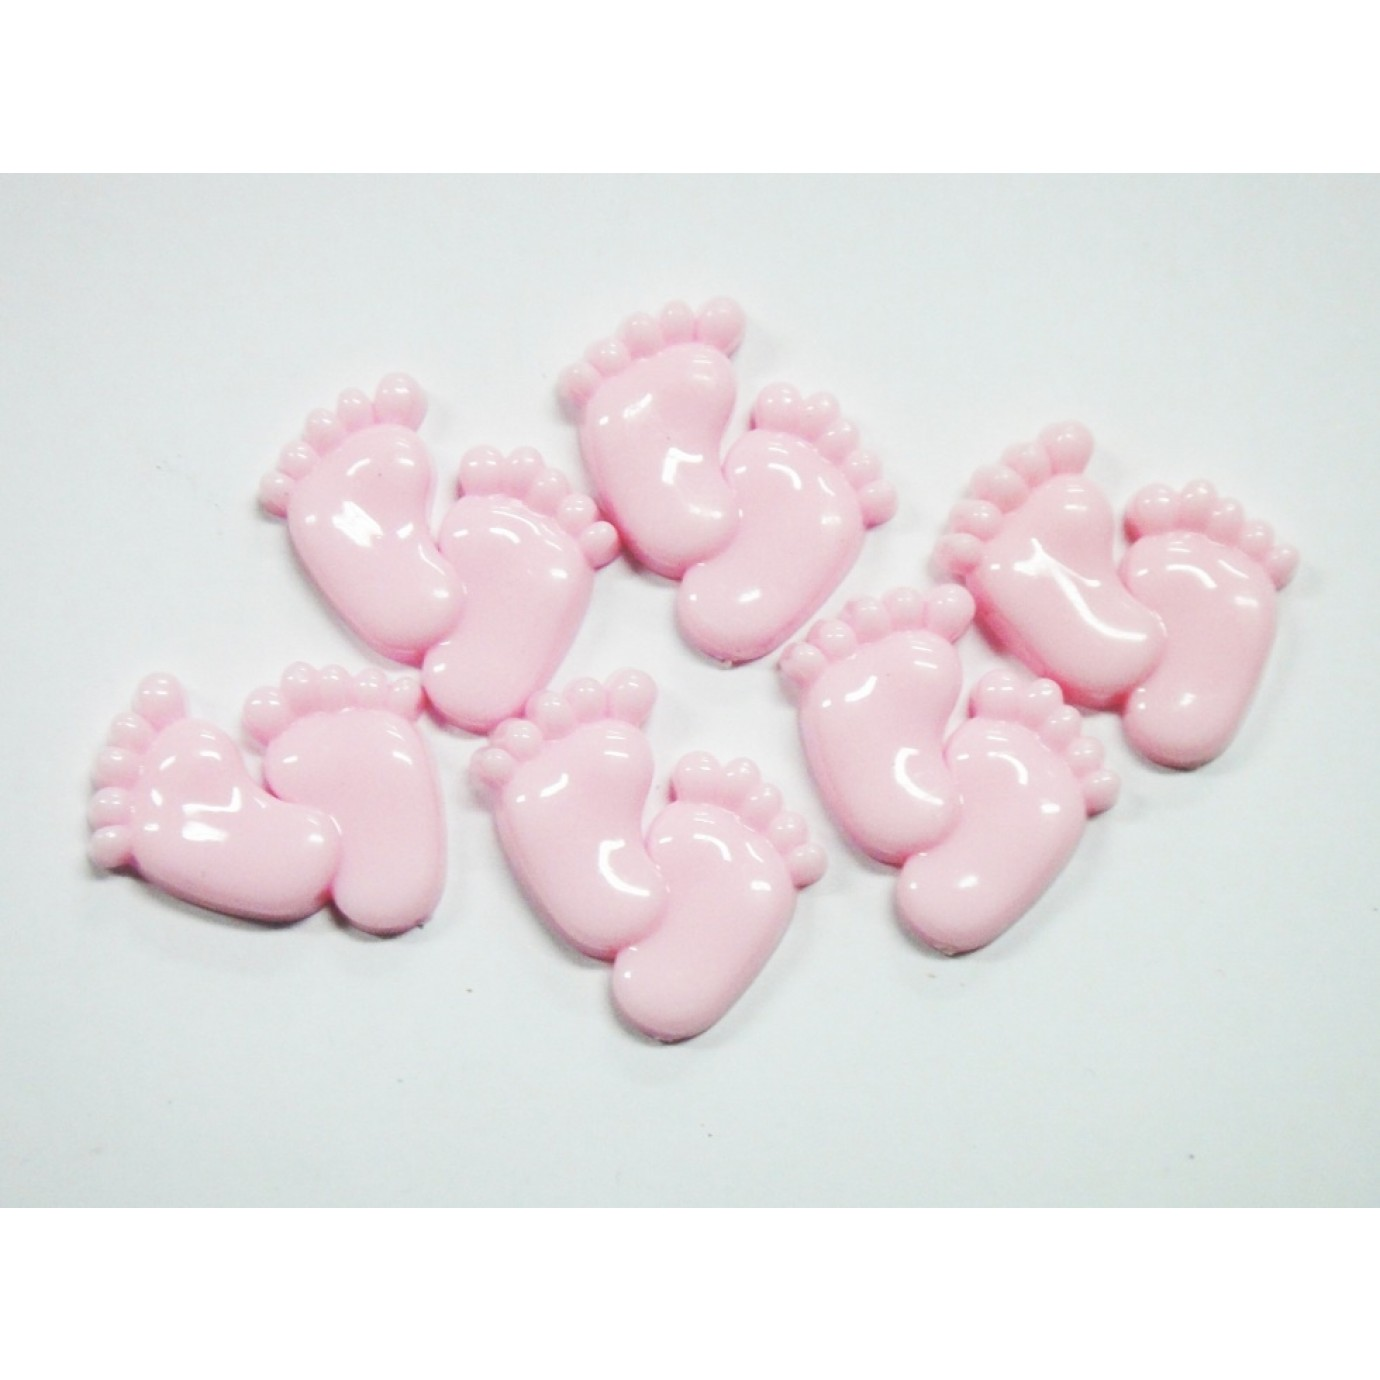 Plastic feet pink baby shower decorations party for Baby feet decoration